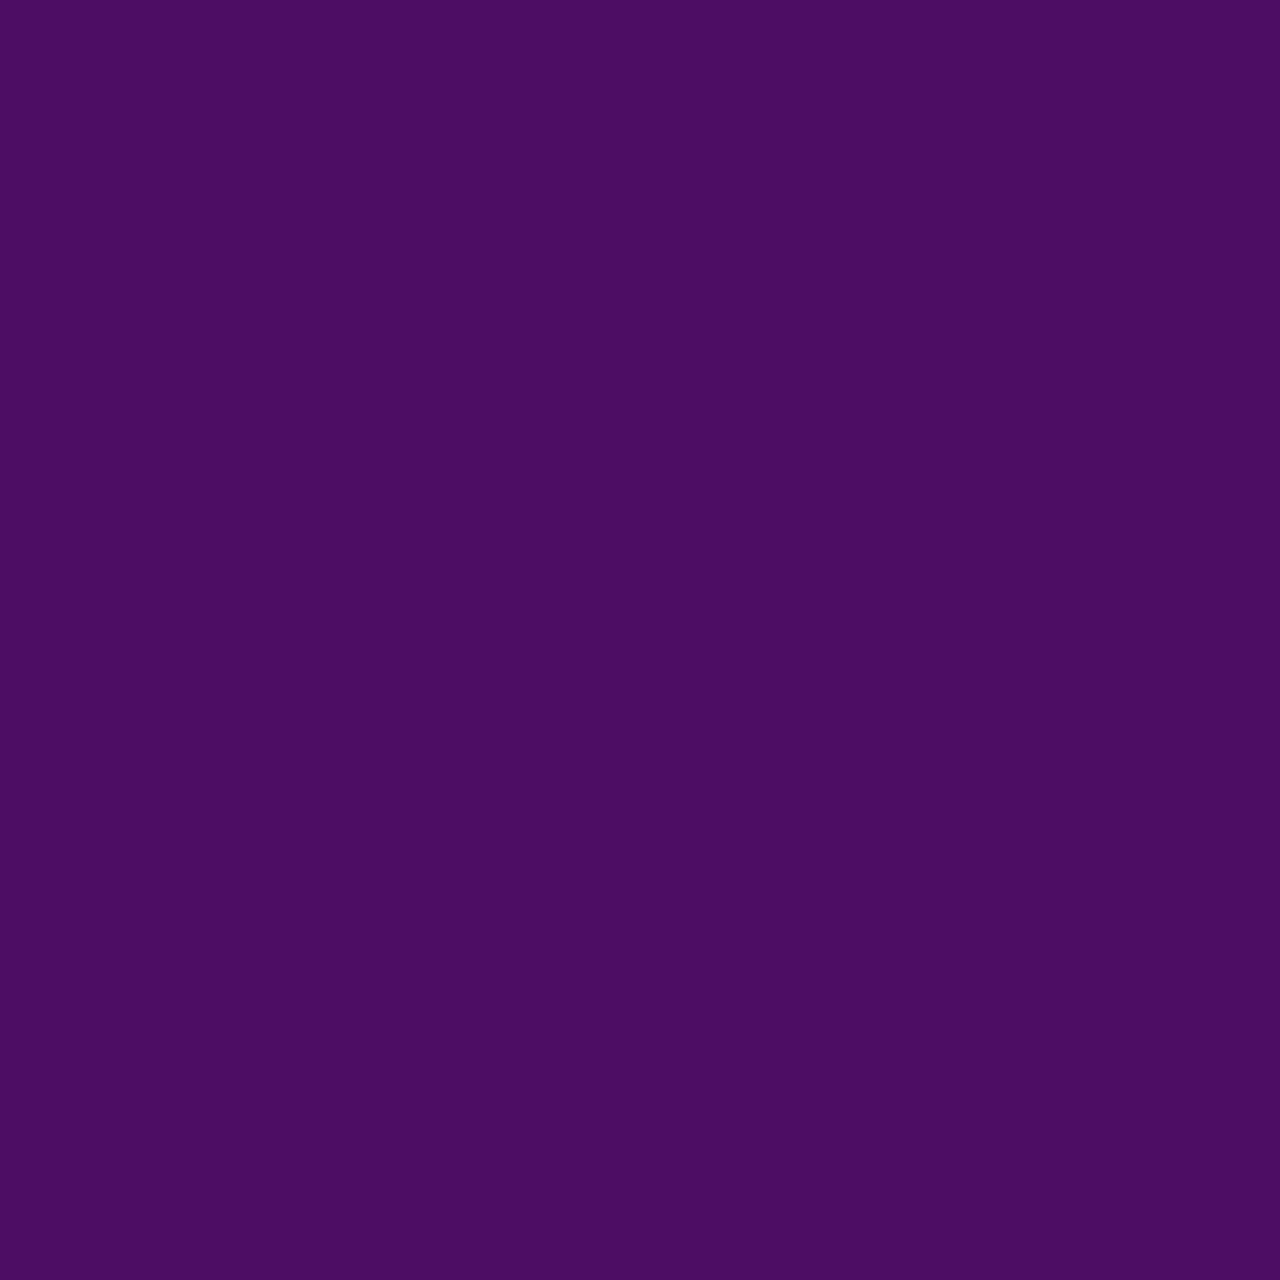 #0049 Rosco Gels Roscolux Medium Purple, 20x24""